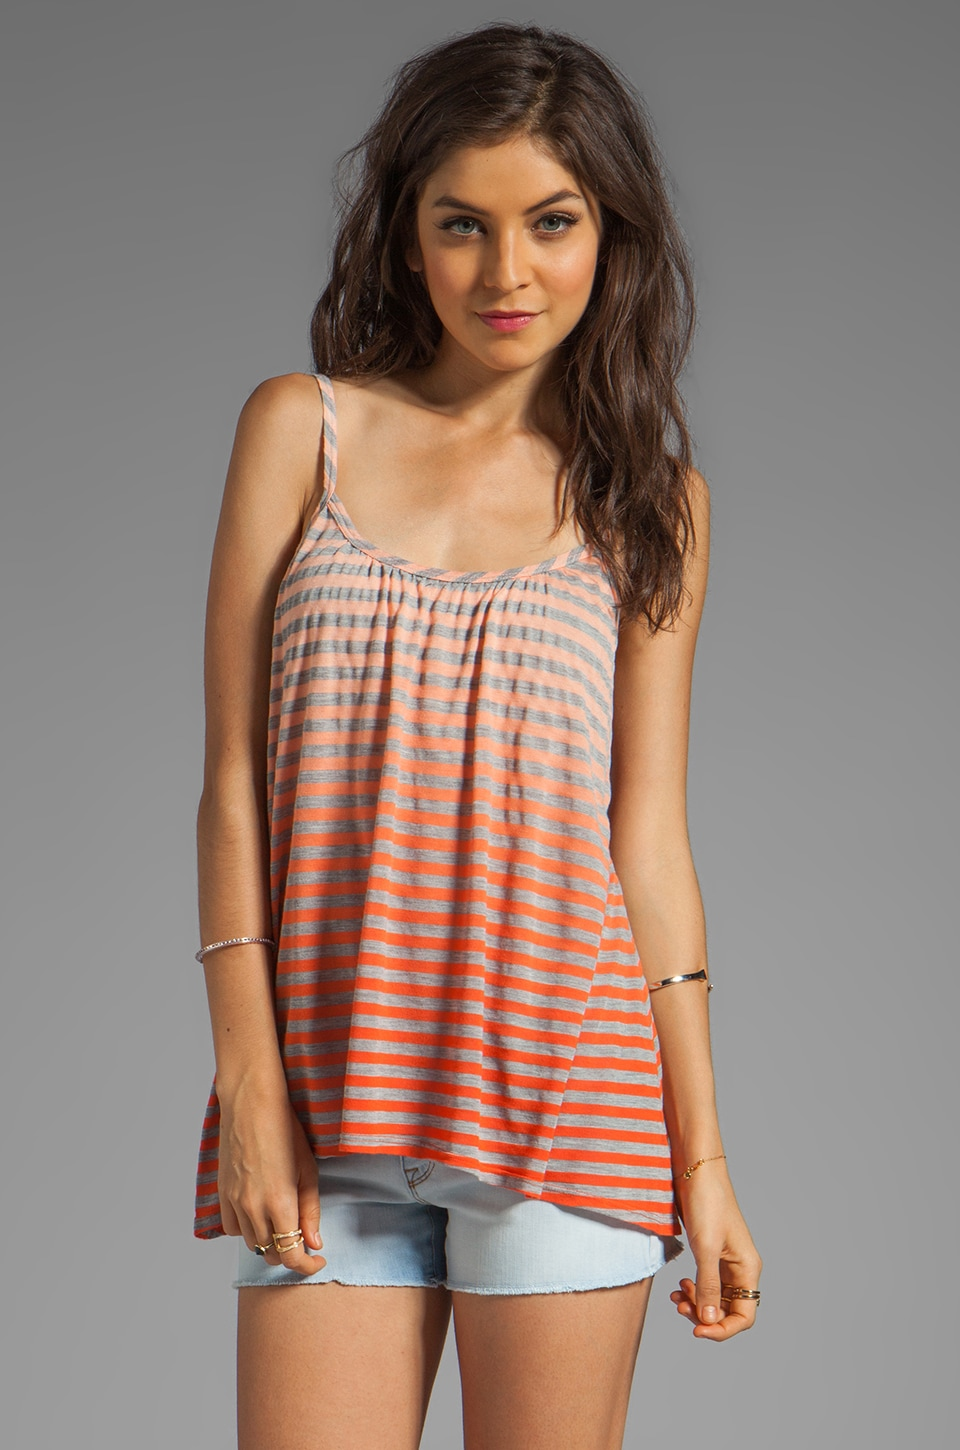 Gypsy 05 Cabarete Jersey Stripe Simple Cami in Lipstick